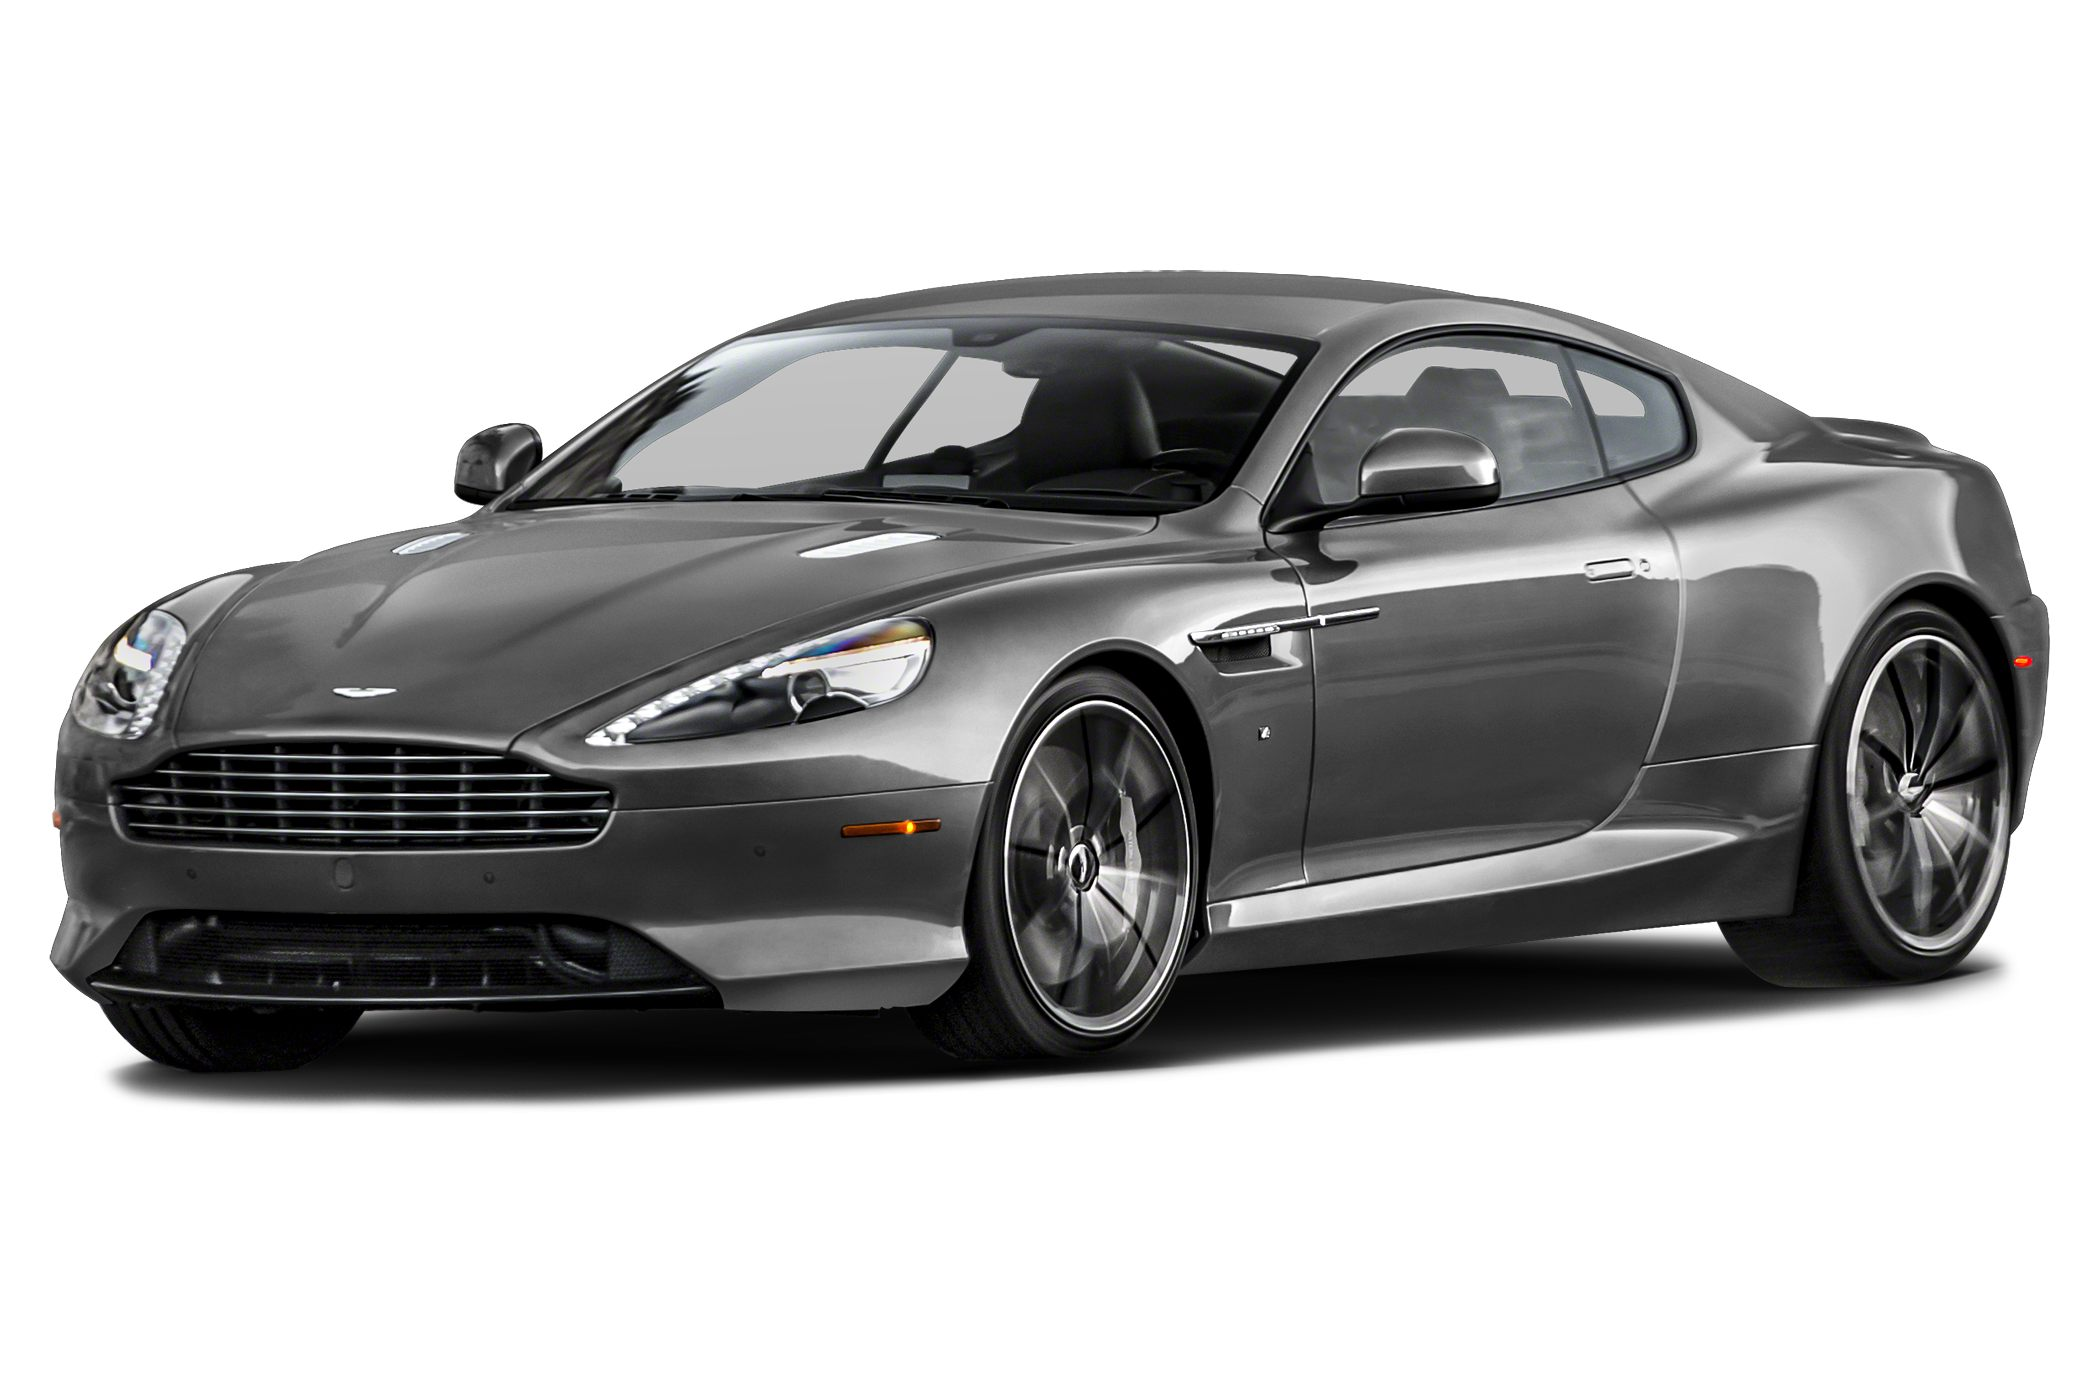 aston martin db9 news photos and buying information autoblog. Black Bedroom Furniture Sets. Home Design Ideas